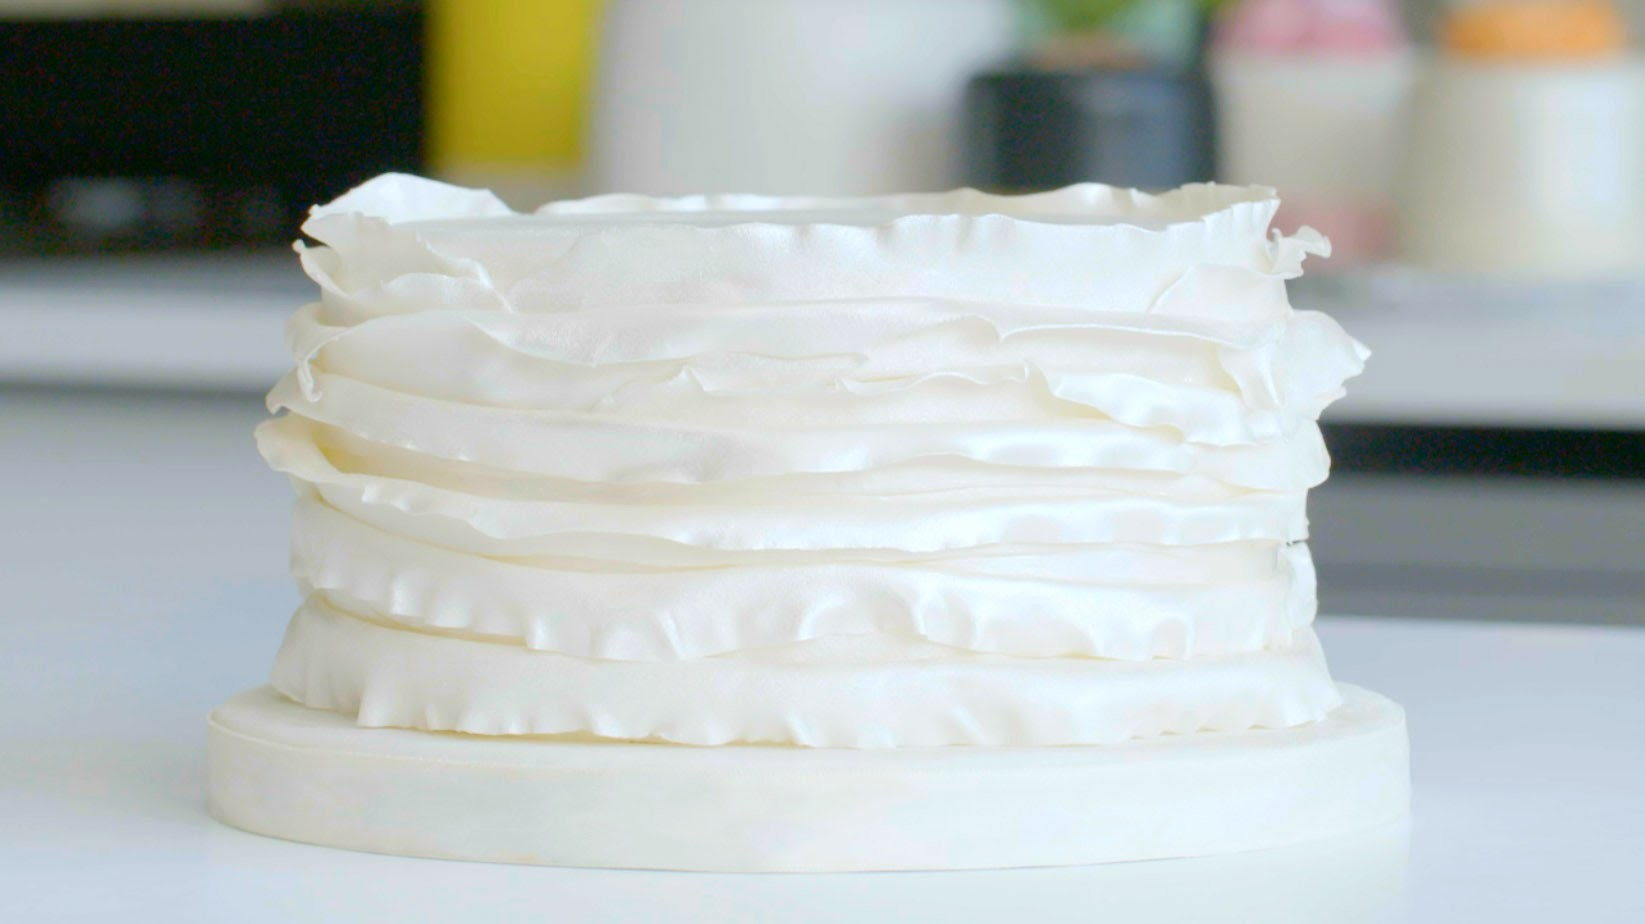 How to create a ruffle effect cake | Cake Creations